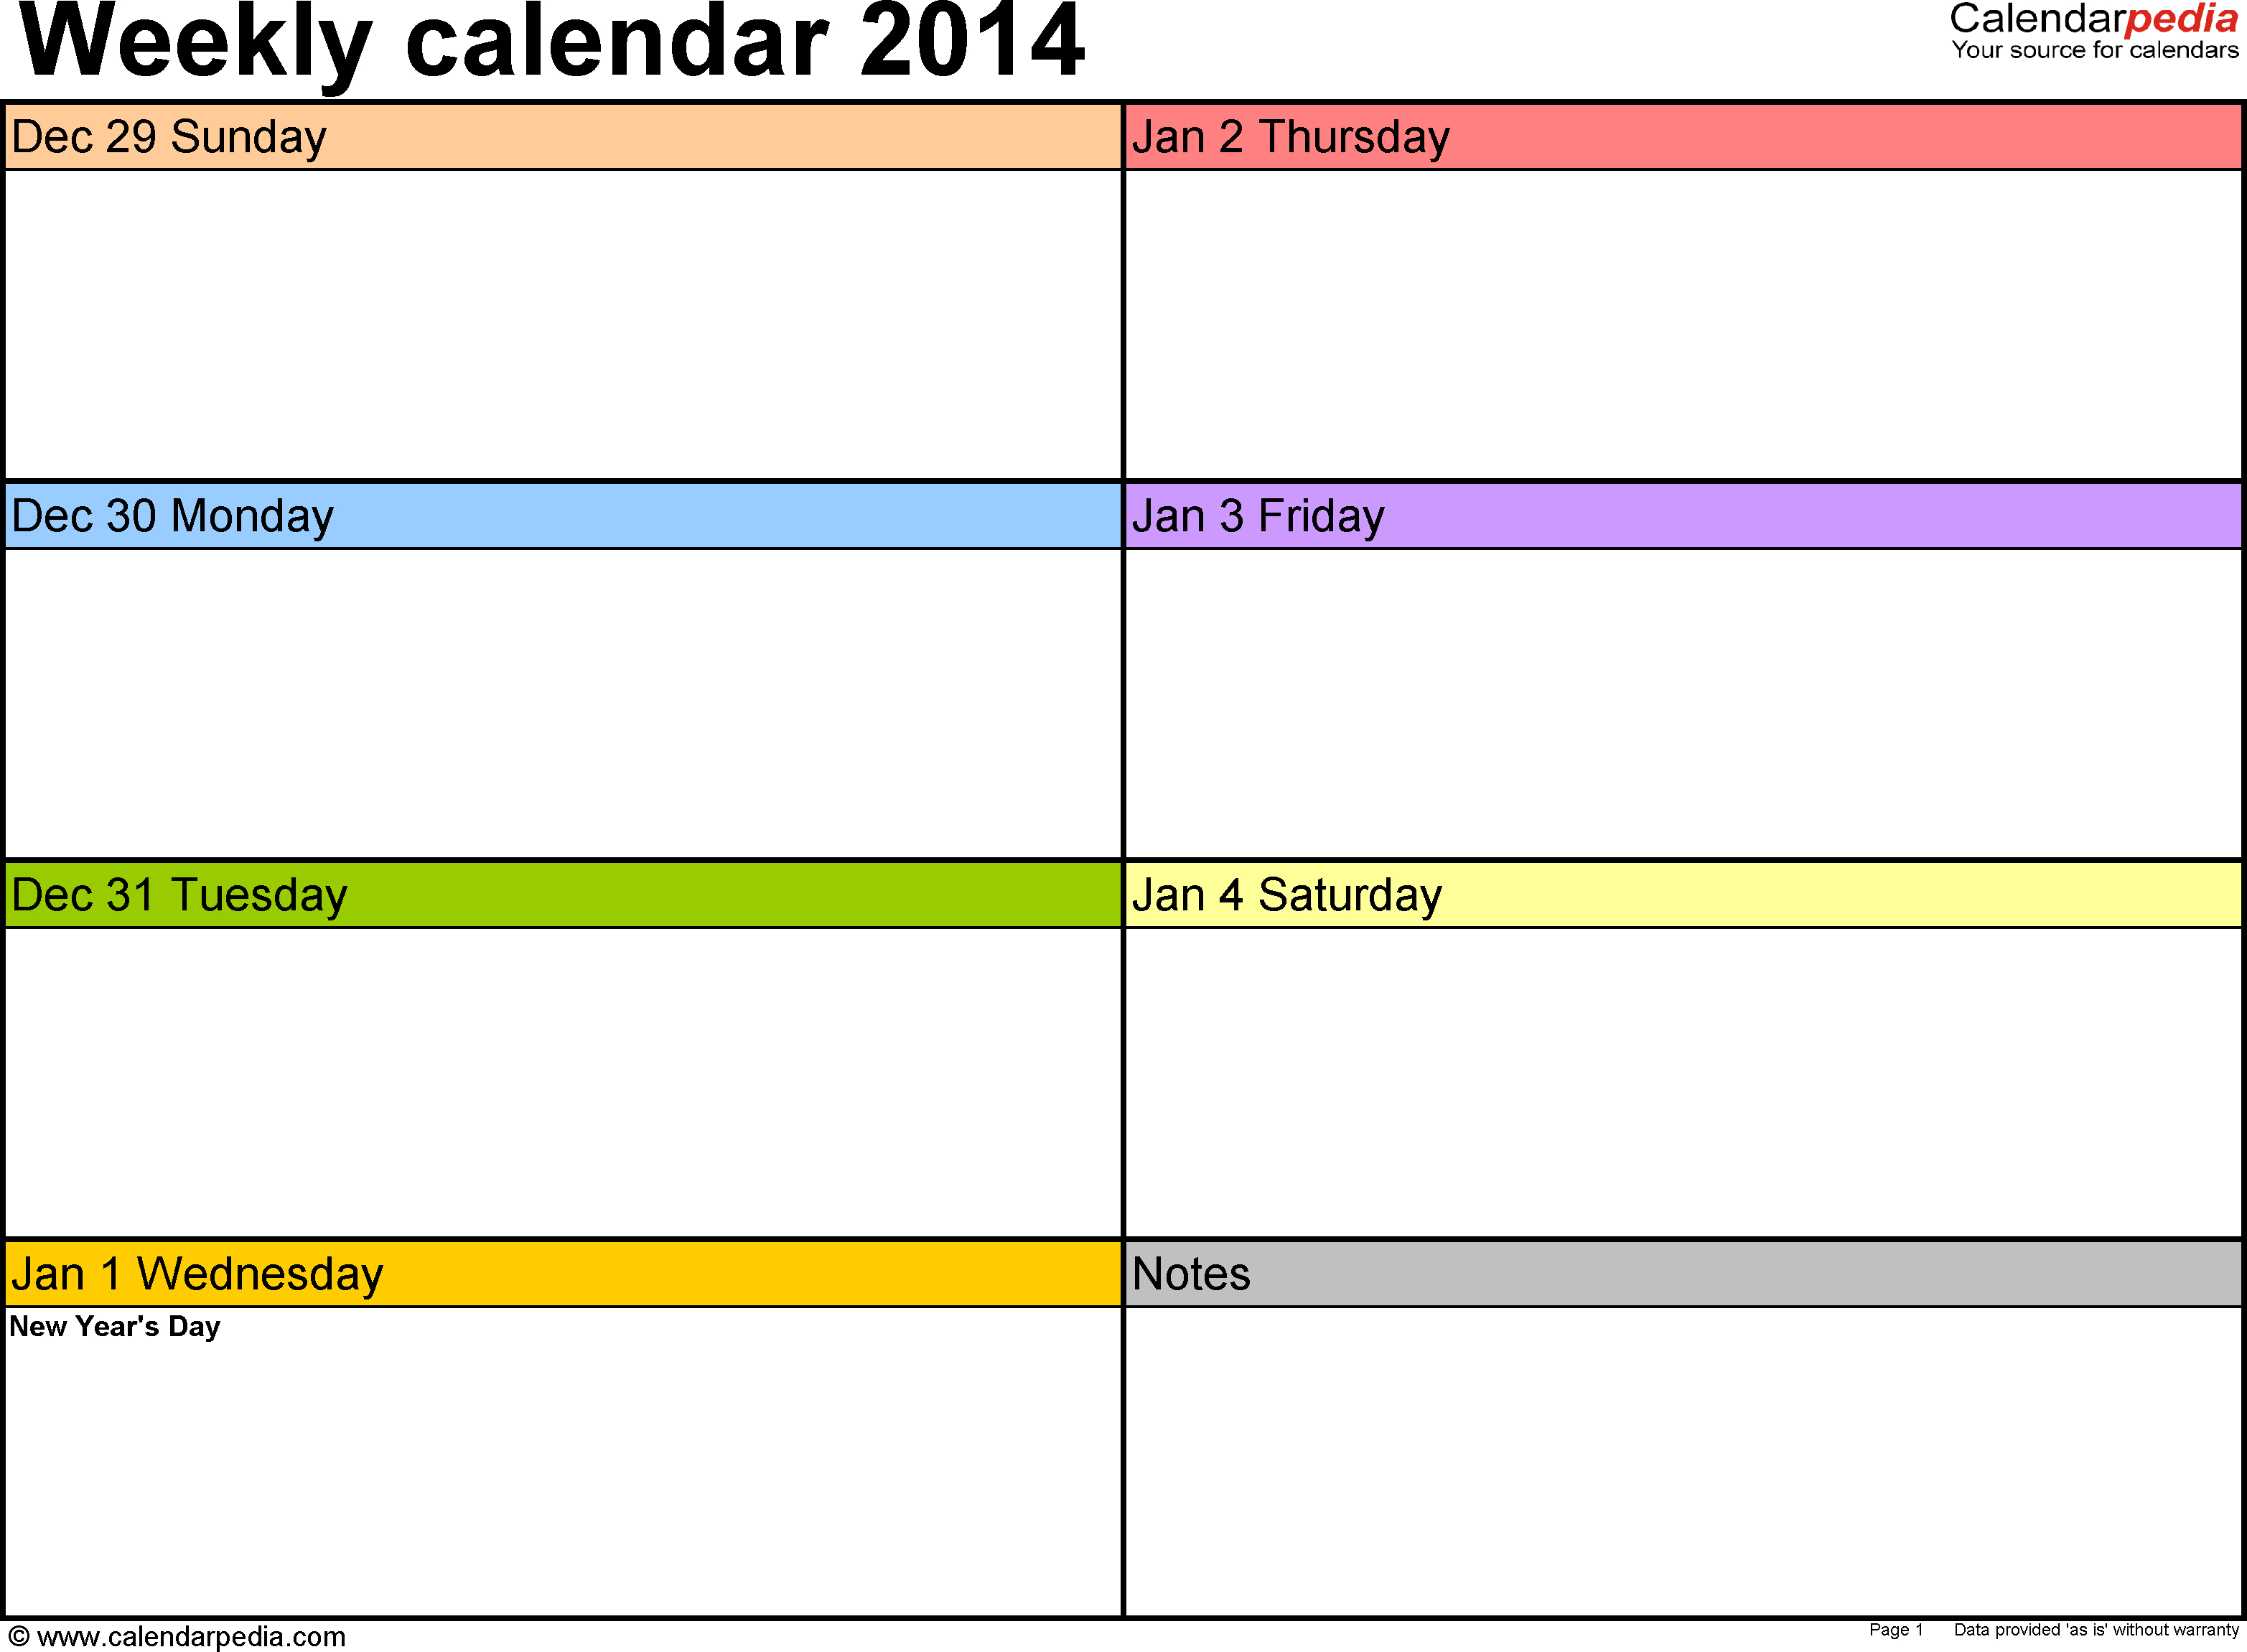 Weekly Calendar 2014 For Pdf - 4 Free Printable Templates inside Printable Schedule Template For Pages